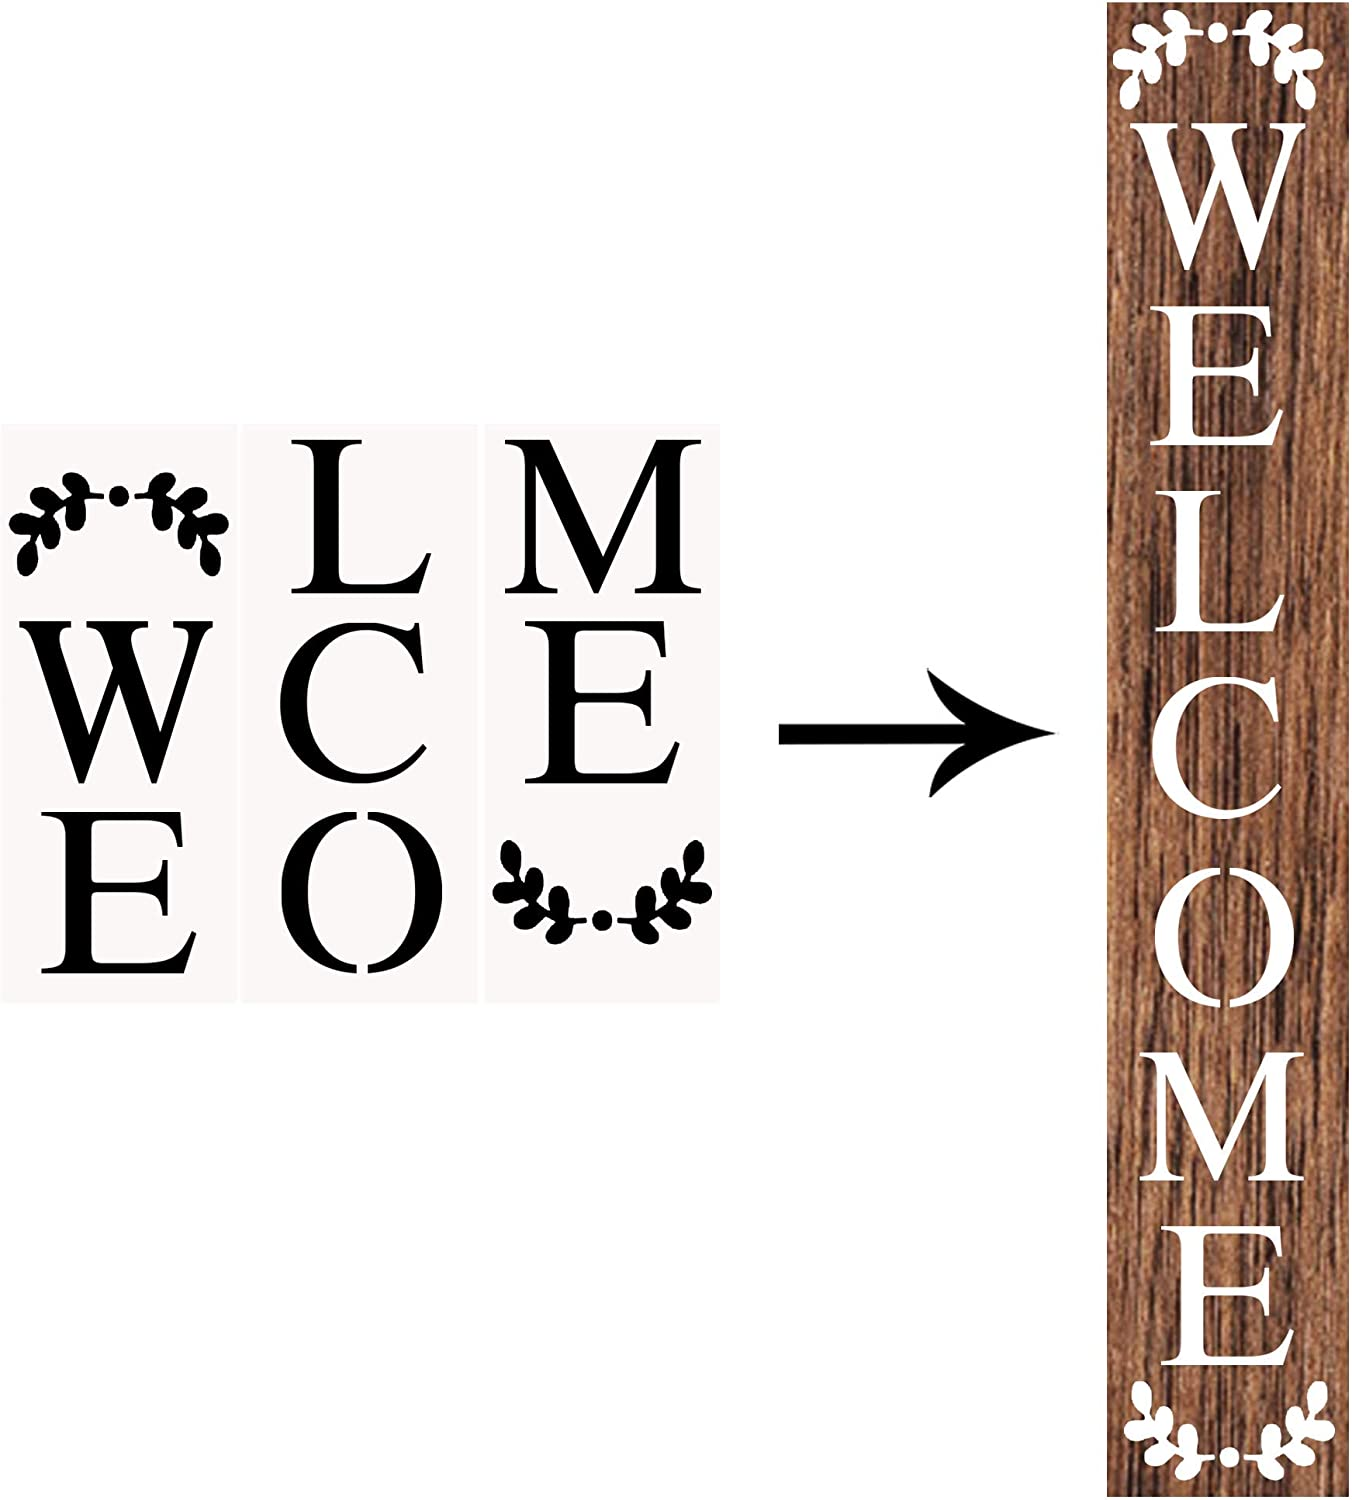 Welcome Stencils for Painting on Wood Reusable Letter Stencils for Home Patio Porch Signs /& Front Door Decorations 11 Pack Large Vertical Welcome Sign Stencil Templates for Wood Signs